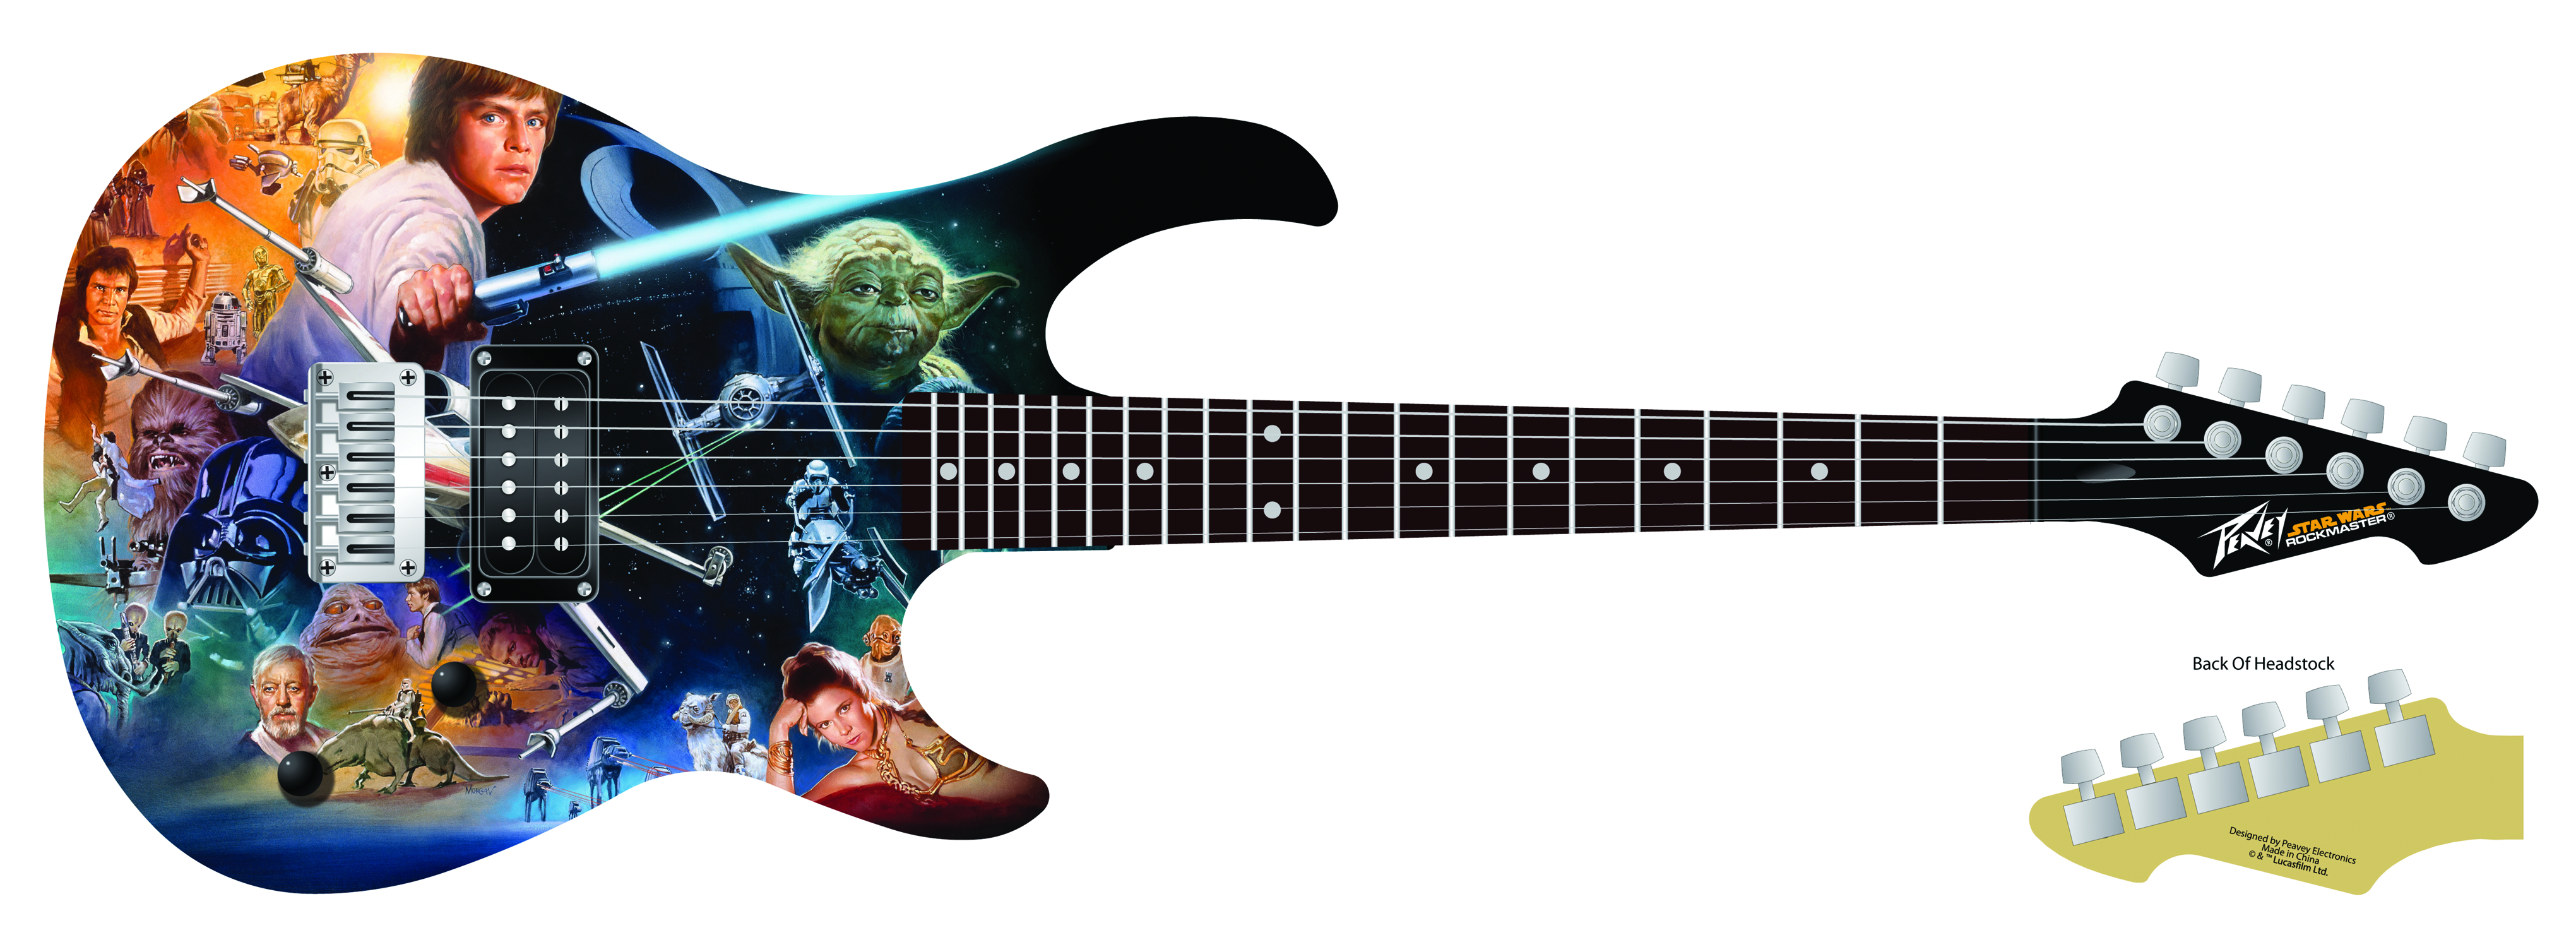 STAR WARS COLLAGE ROCKMASTER ELECTRIC GUITAR